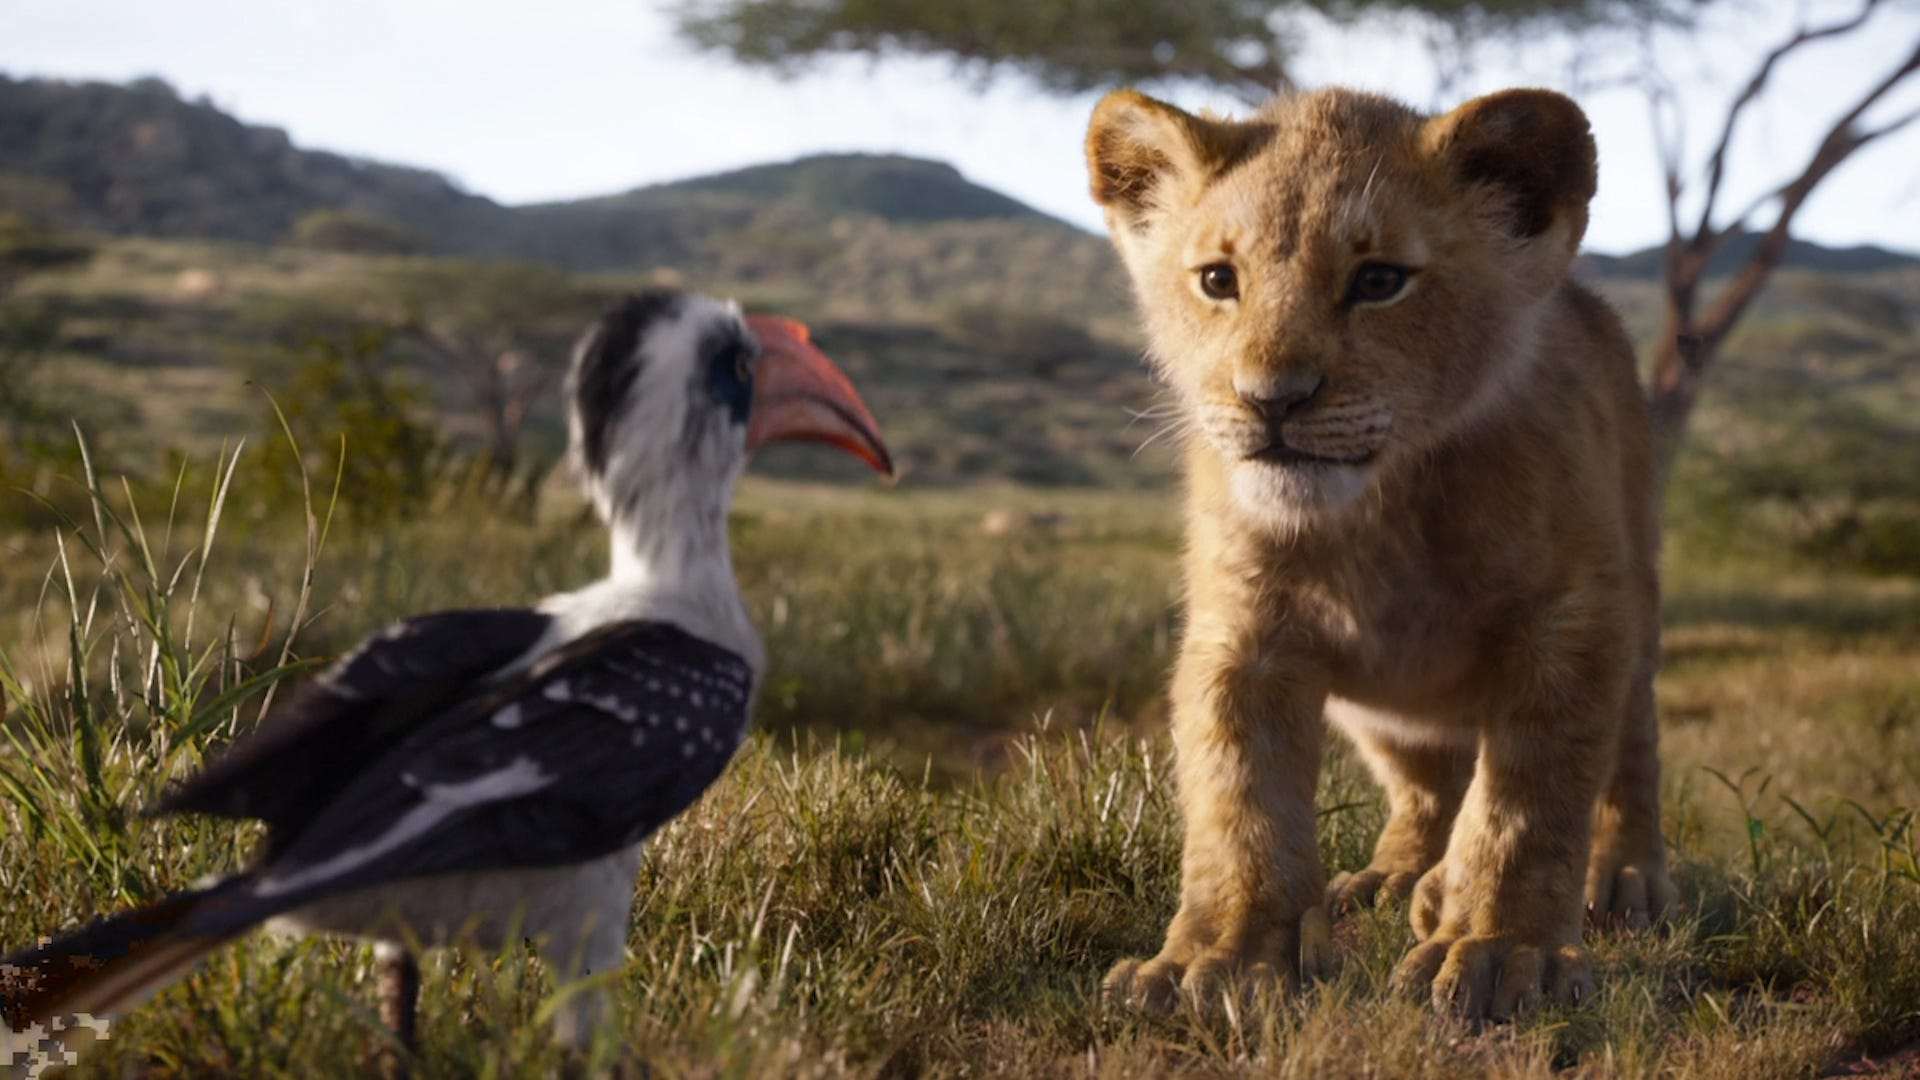 'The Lion King': See what the circle of life looks like in live action